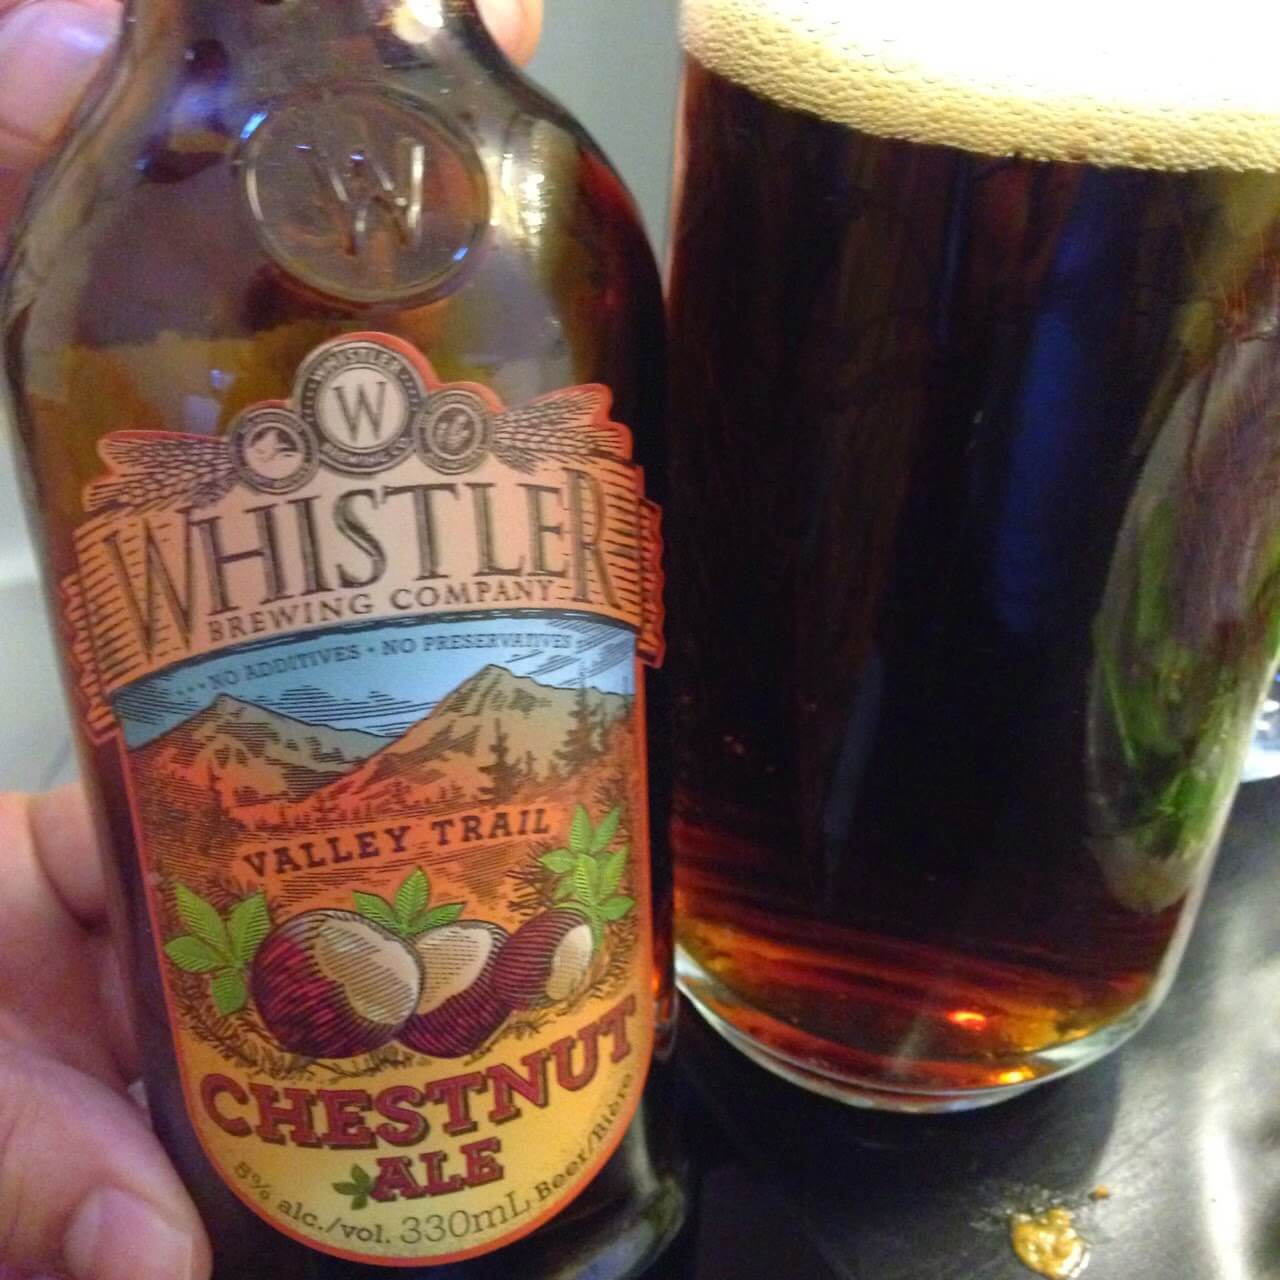 Whistler Valley Trail Chestnut Ale